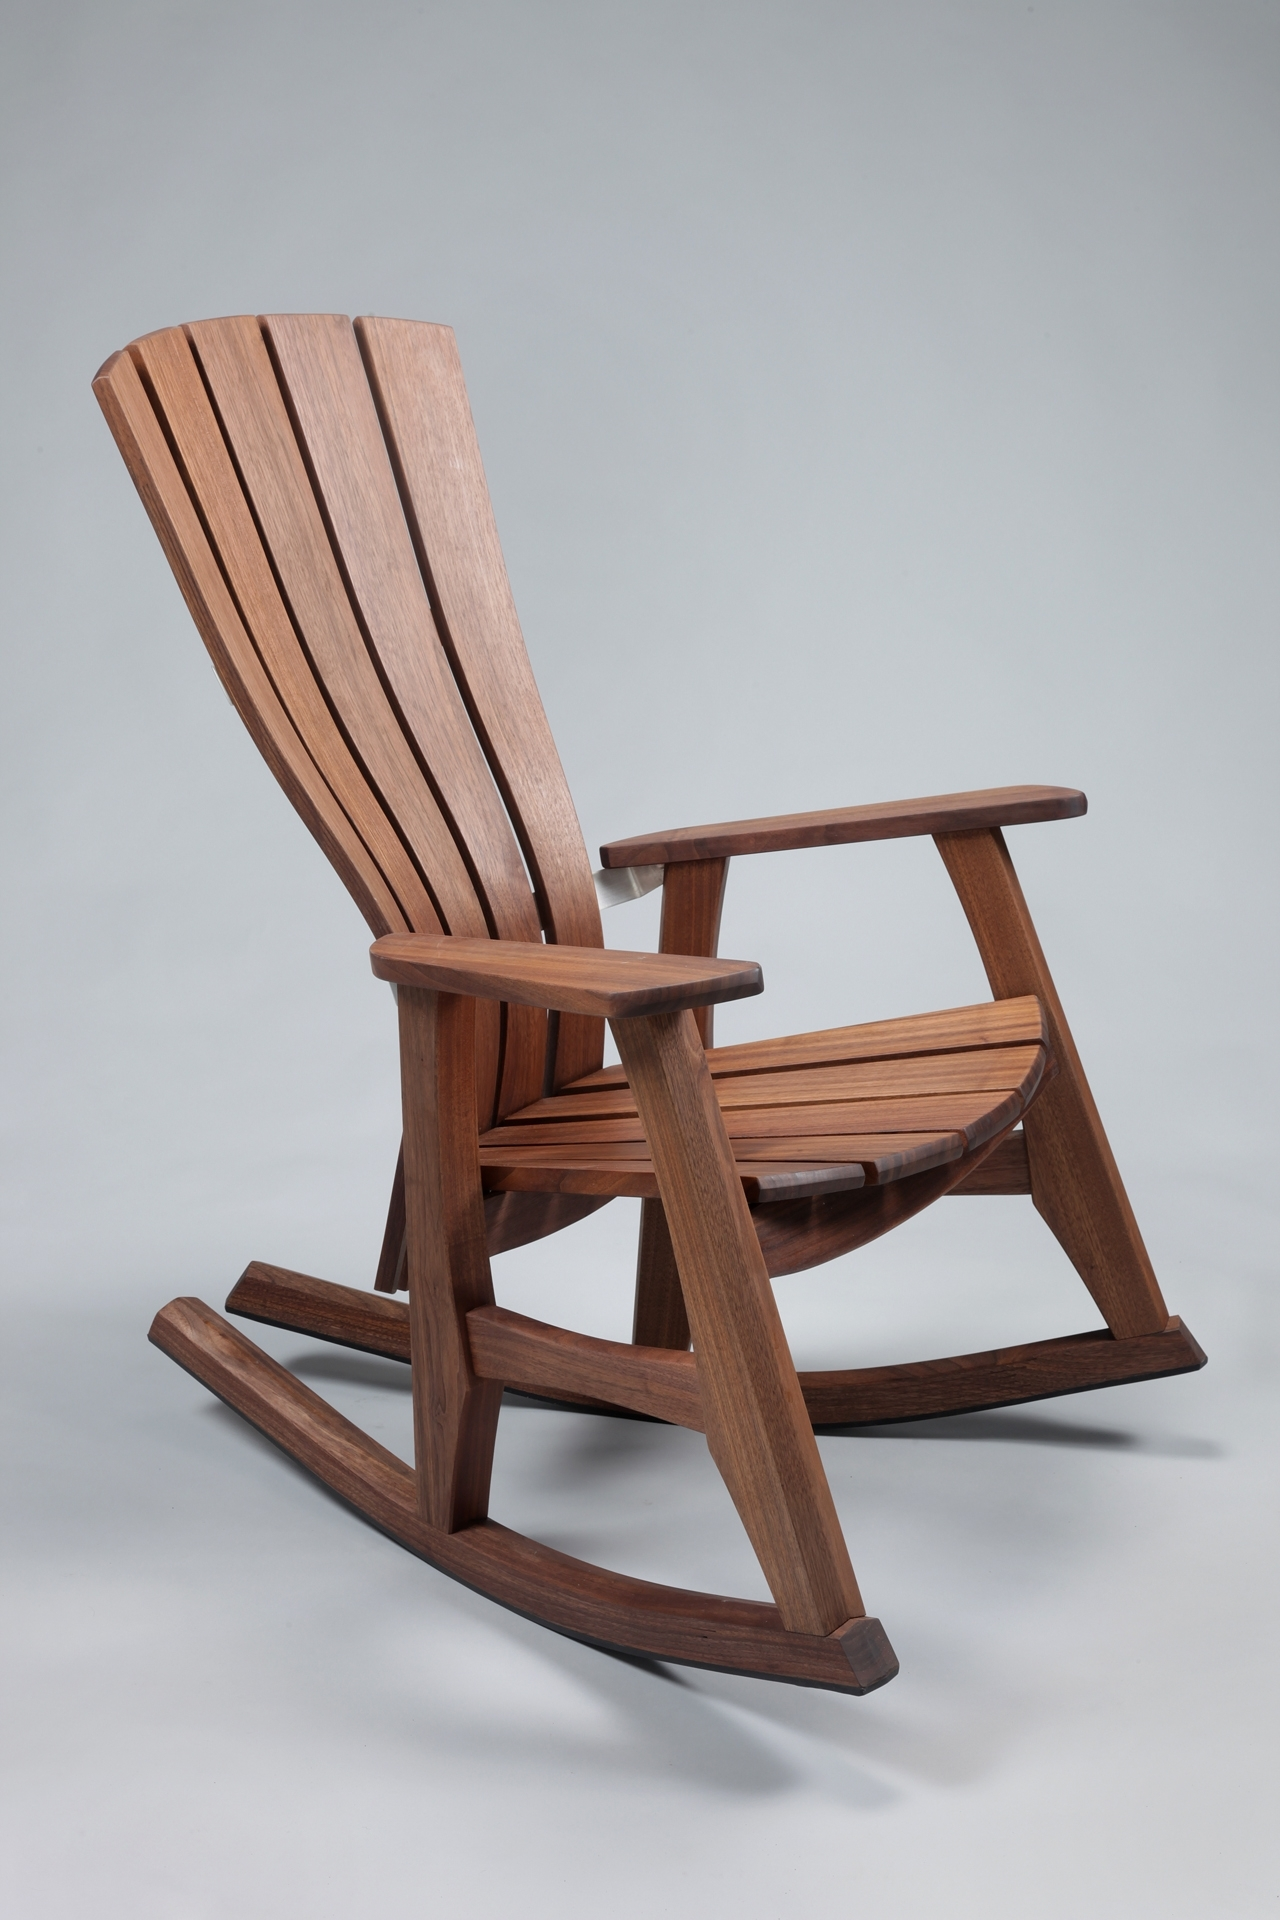 Best And Newest Rocking Chair Outdoor Wooden Inside Outdoor Wooden Rocking Chairs Back : Pleasure Outdoor Wooden Rocking (View 5 of 15)